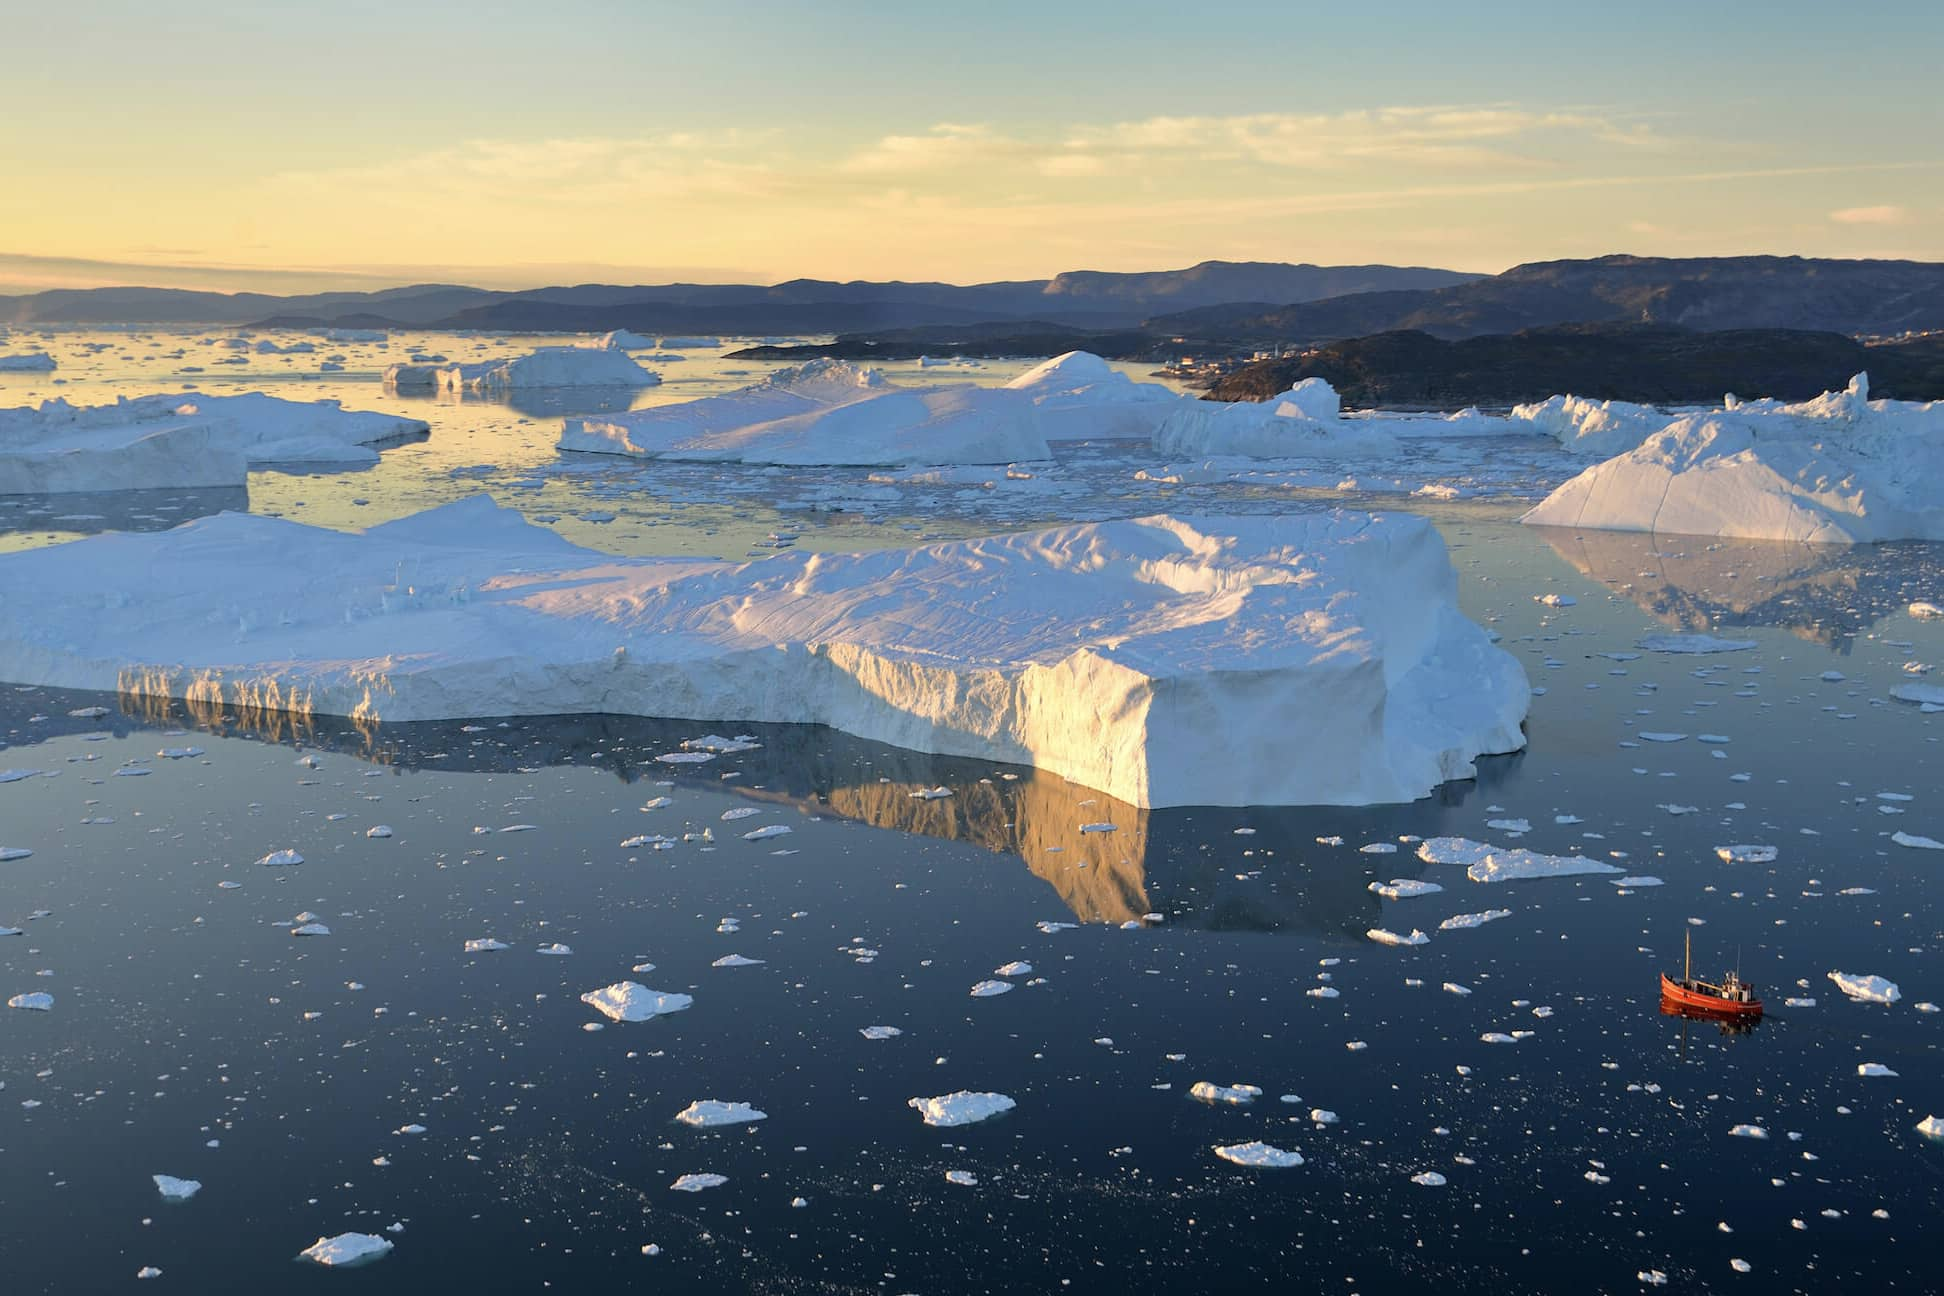 Ilulissat Icefjord from the air. Photo by Rino Rasmussen